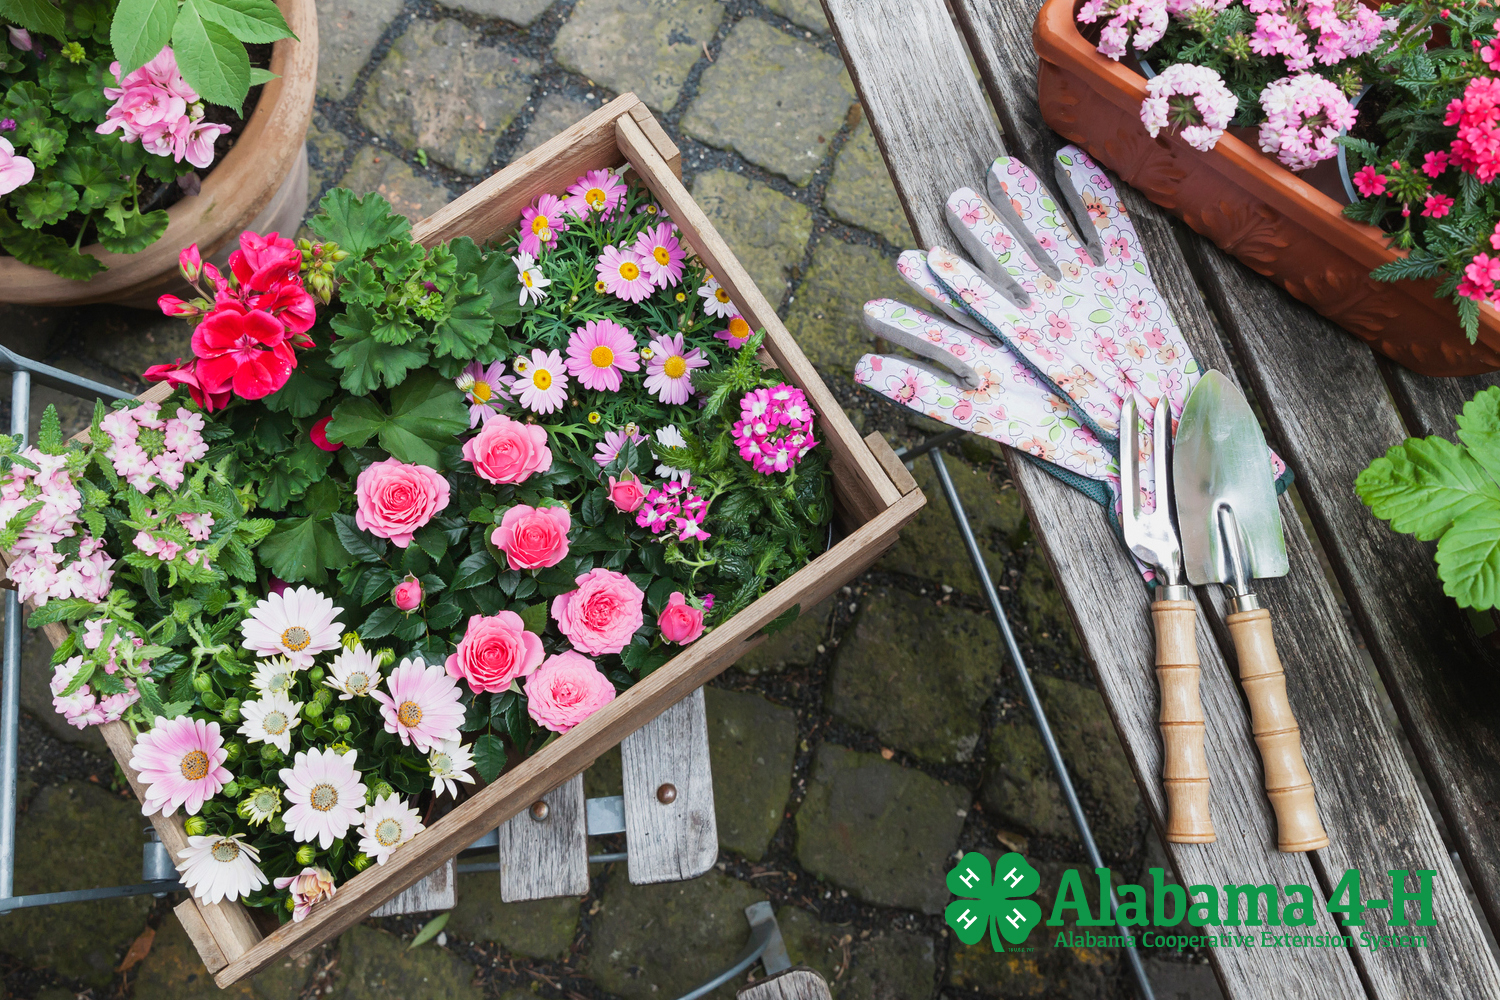 Alabama 4-H Art of Container Gardening project; flowers in containers